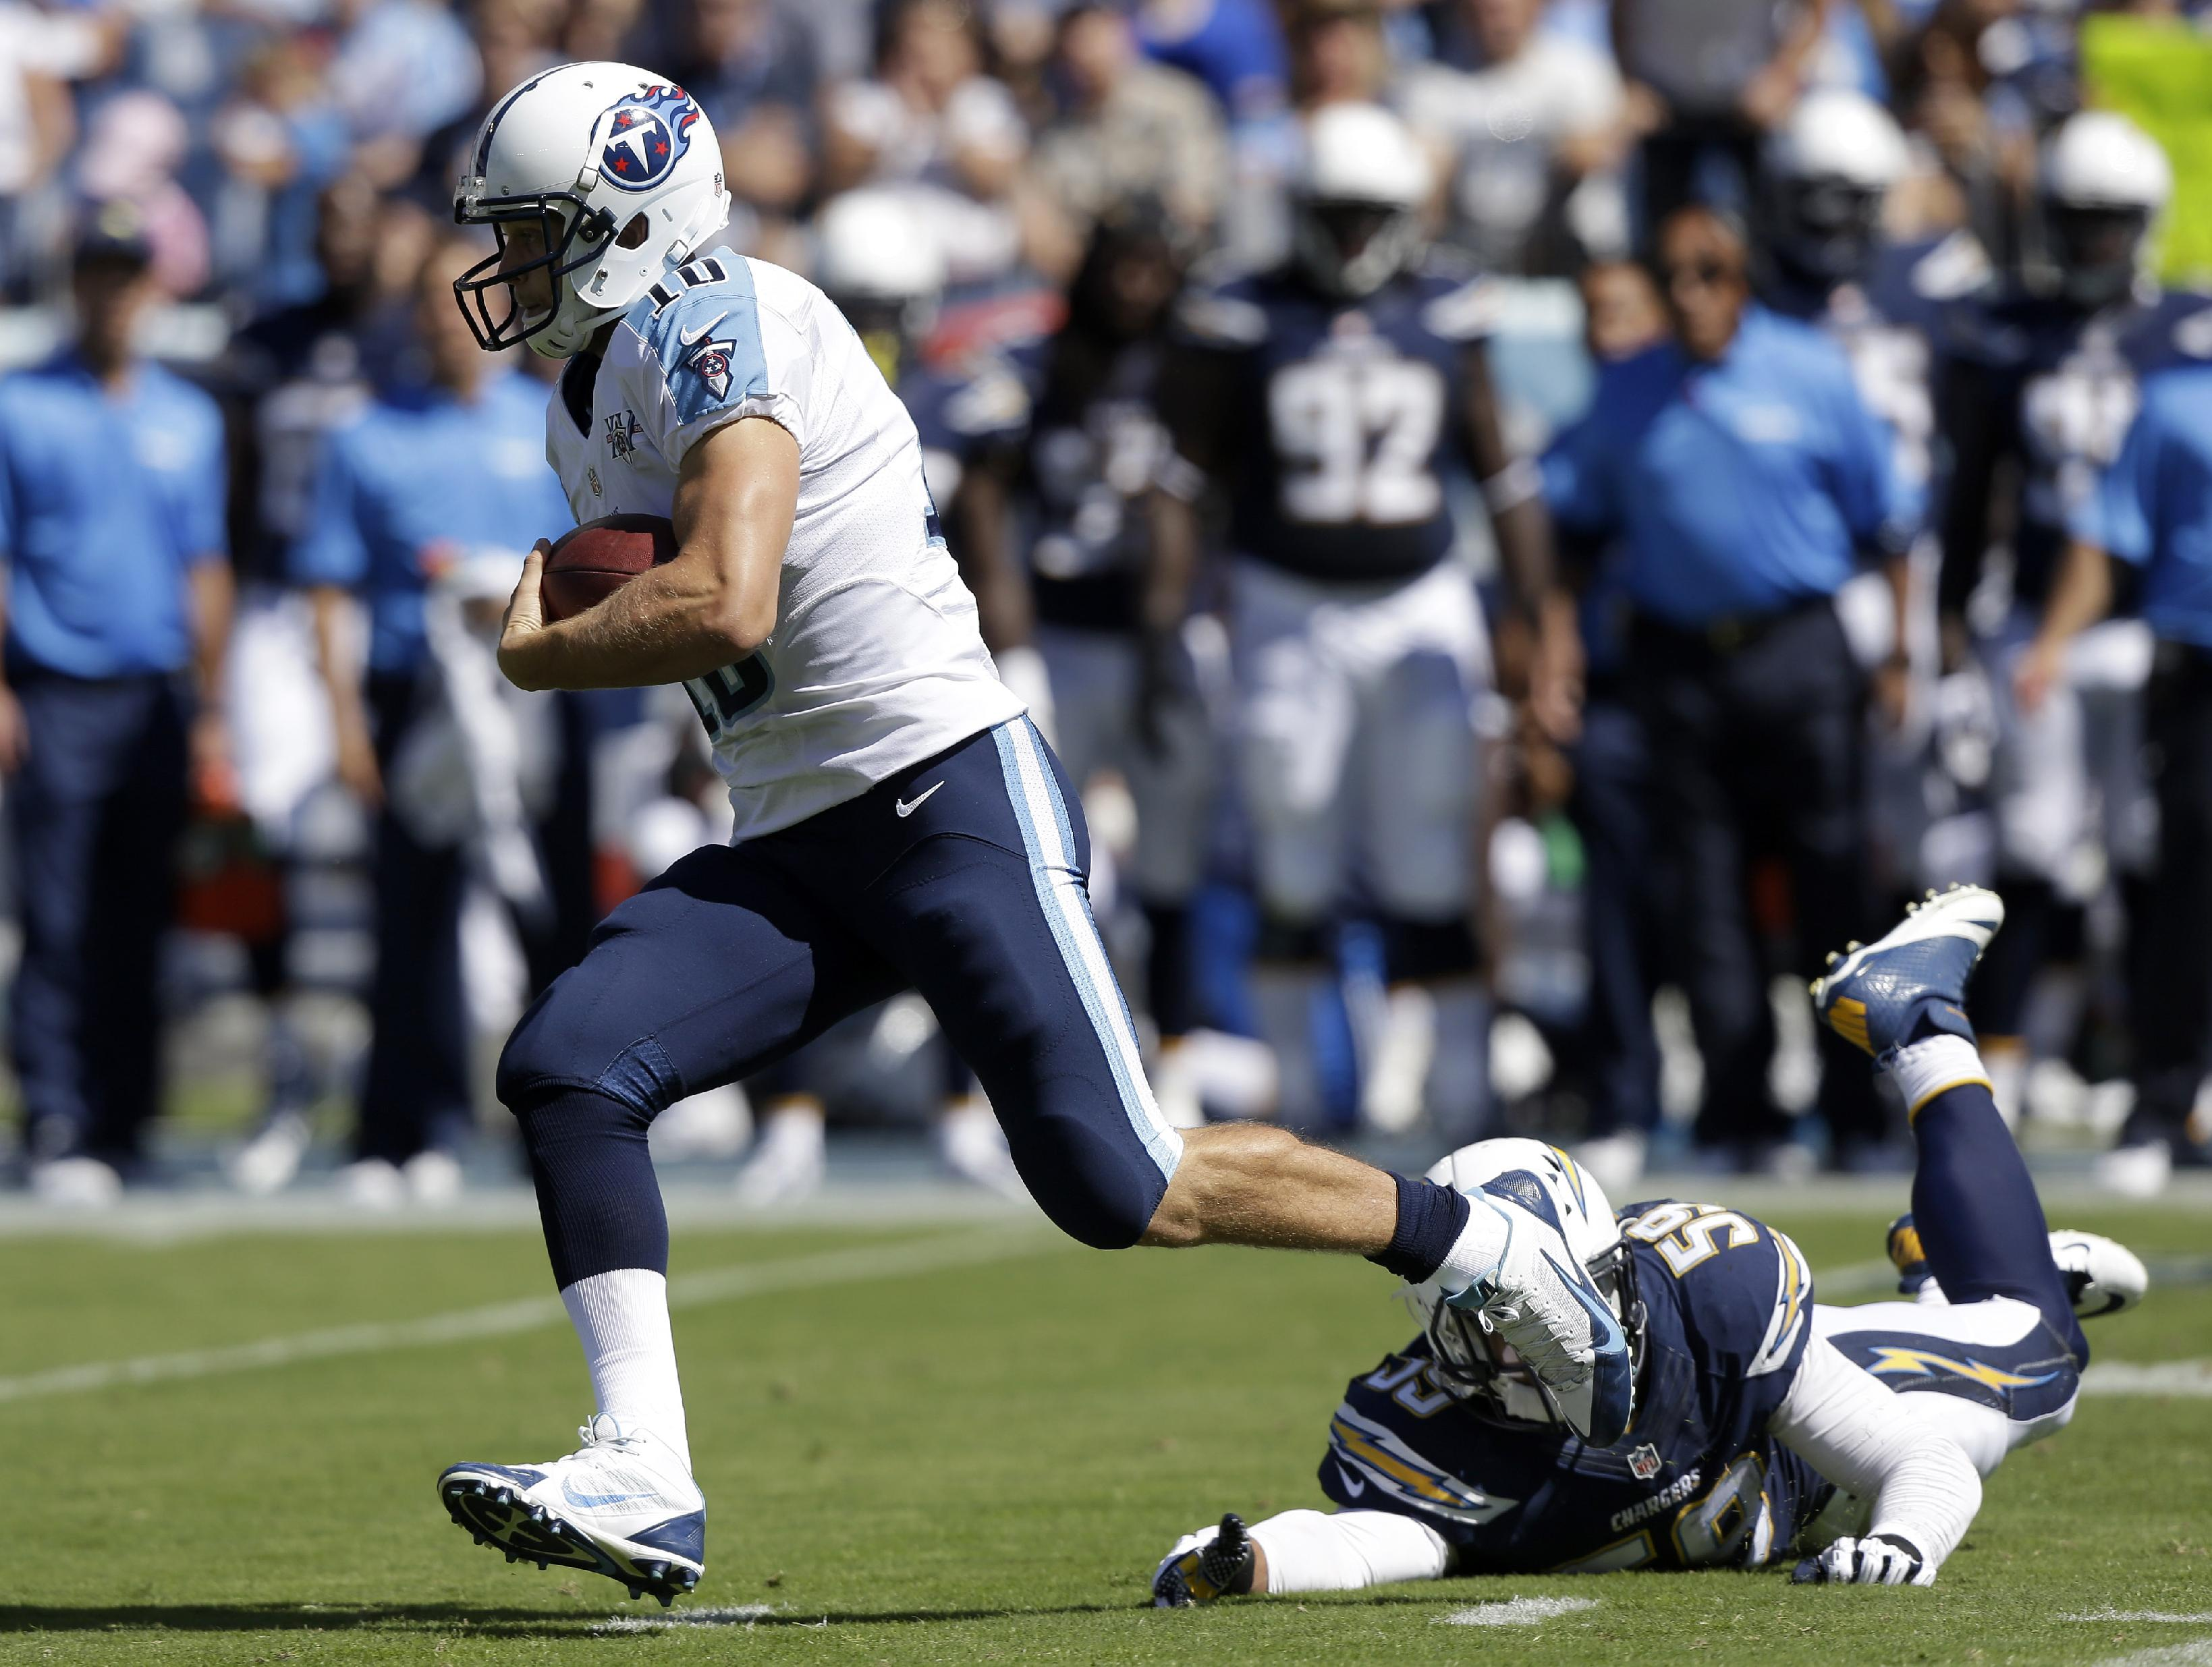 Locker rallies Titans to 20-17 win over Chargers